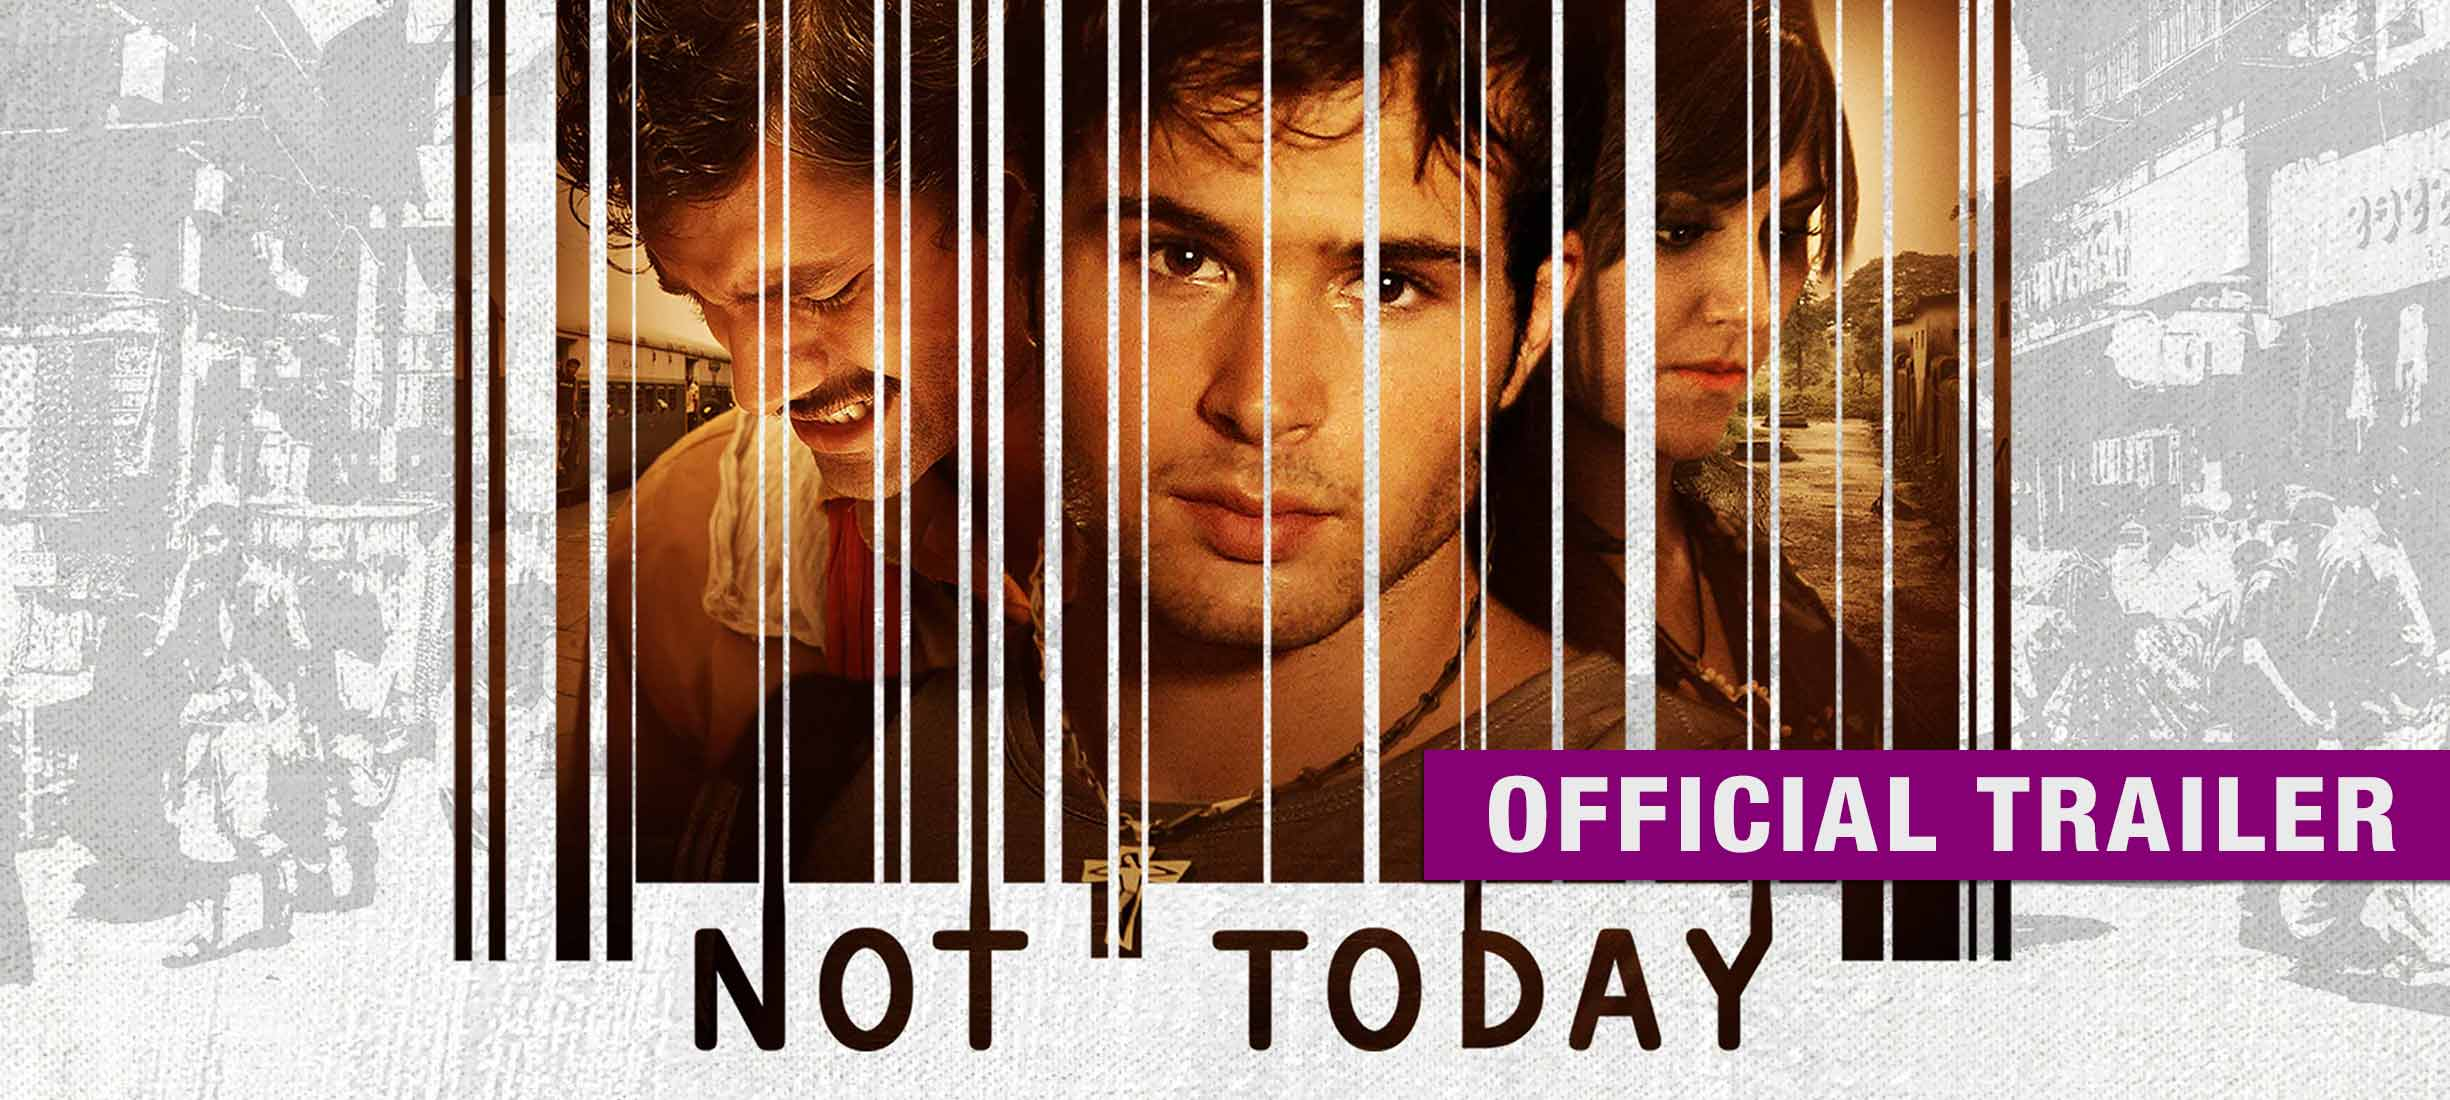 Not Today: Trailer